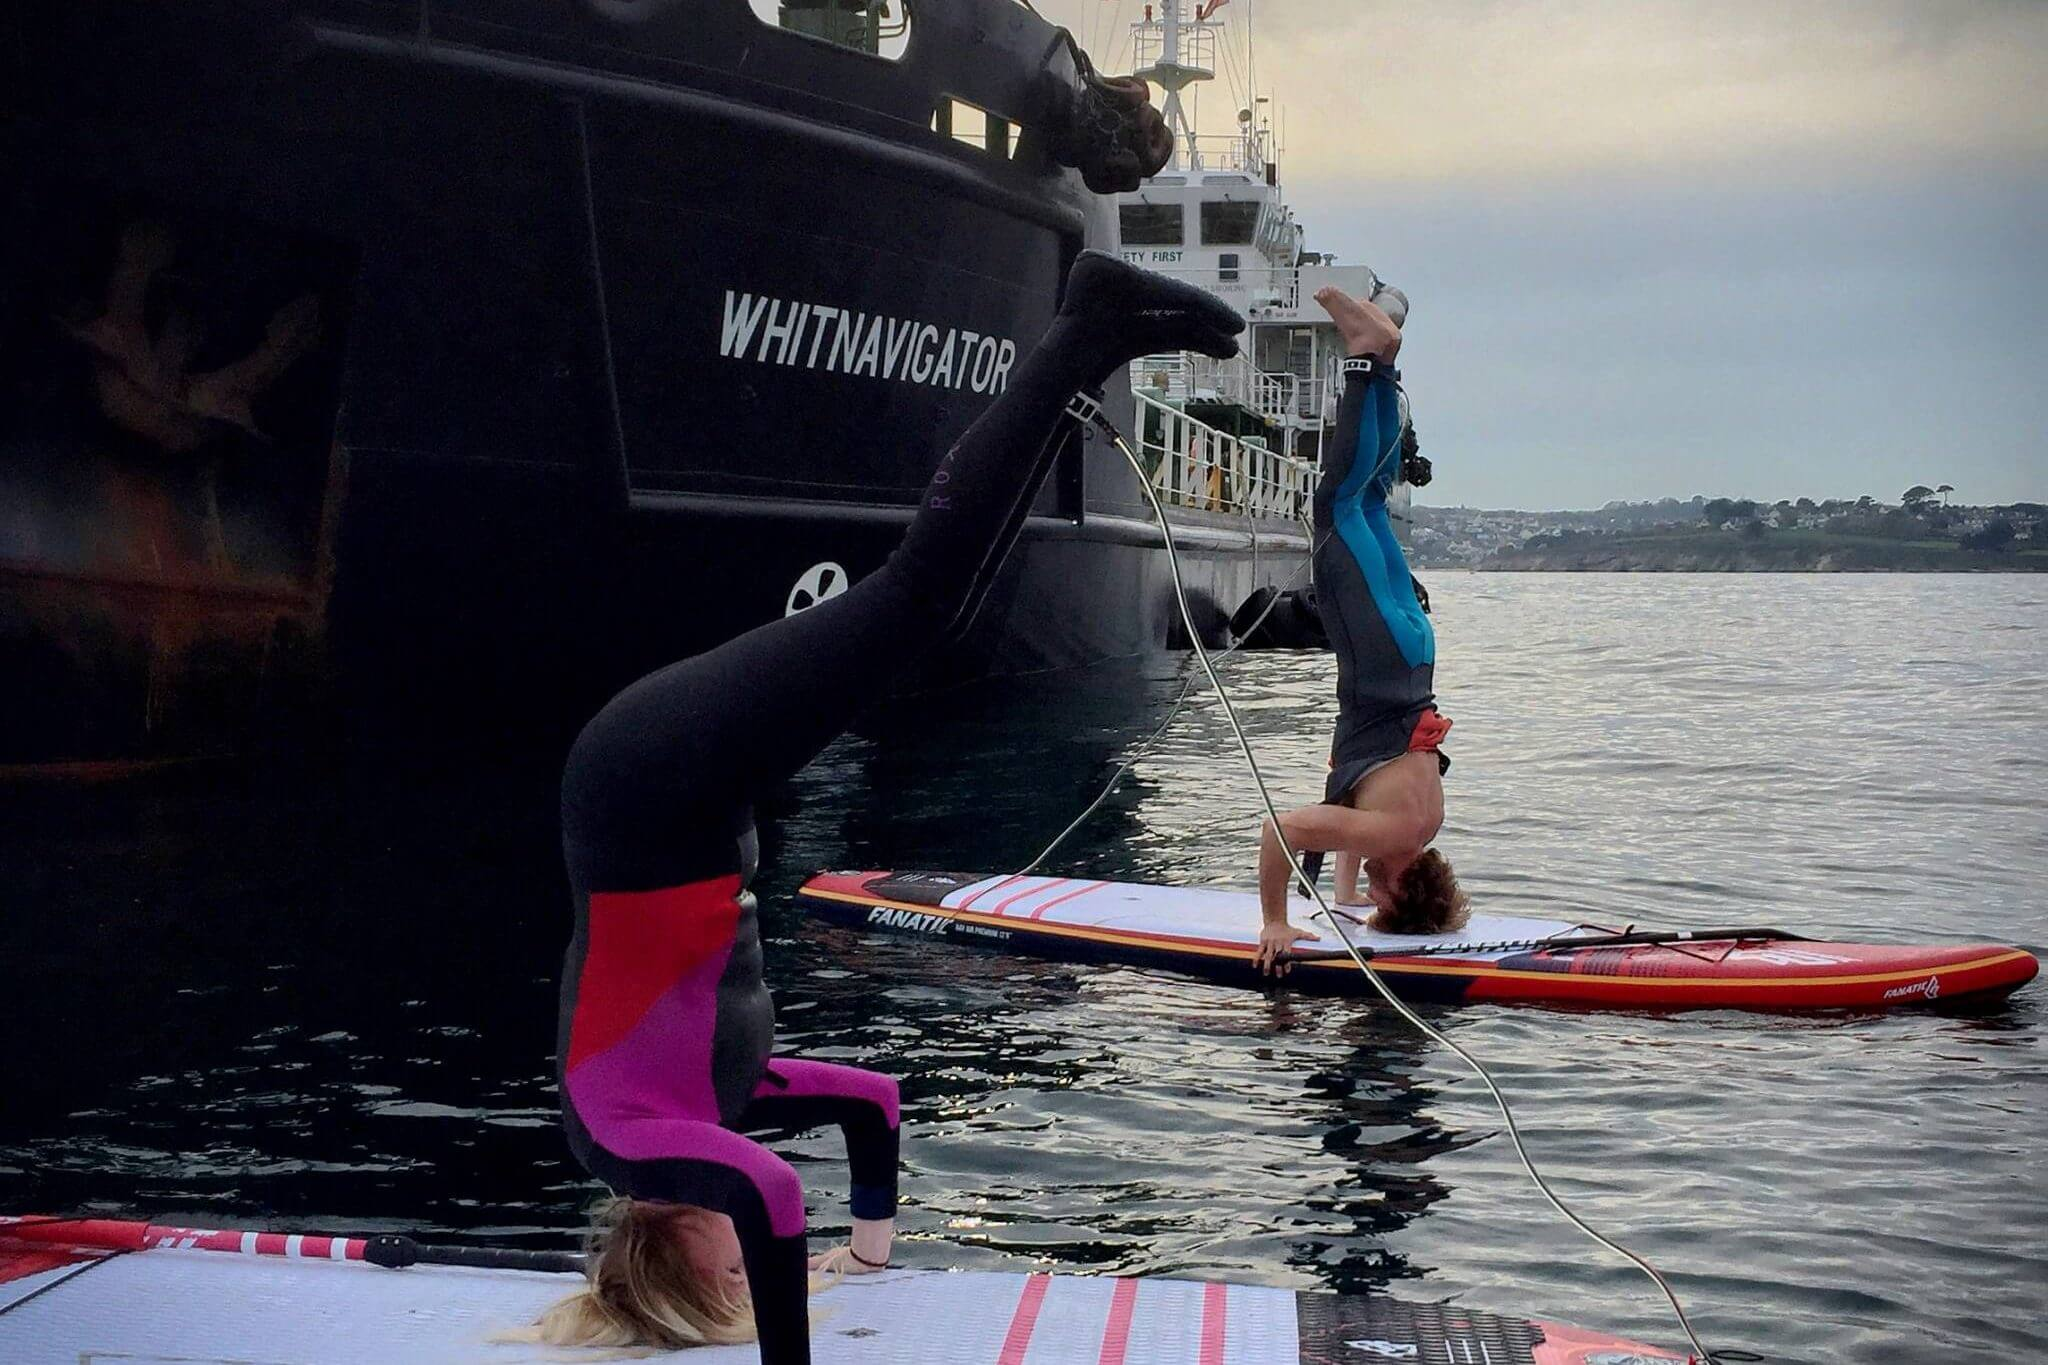 WeSUP Paddleboard, paddle boarding, Falmouth, #LoveFalmouth, #lovethesea, photo competition,